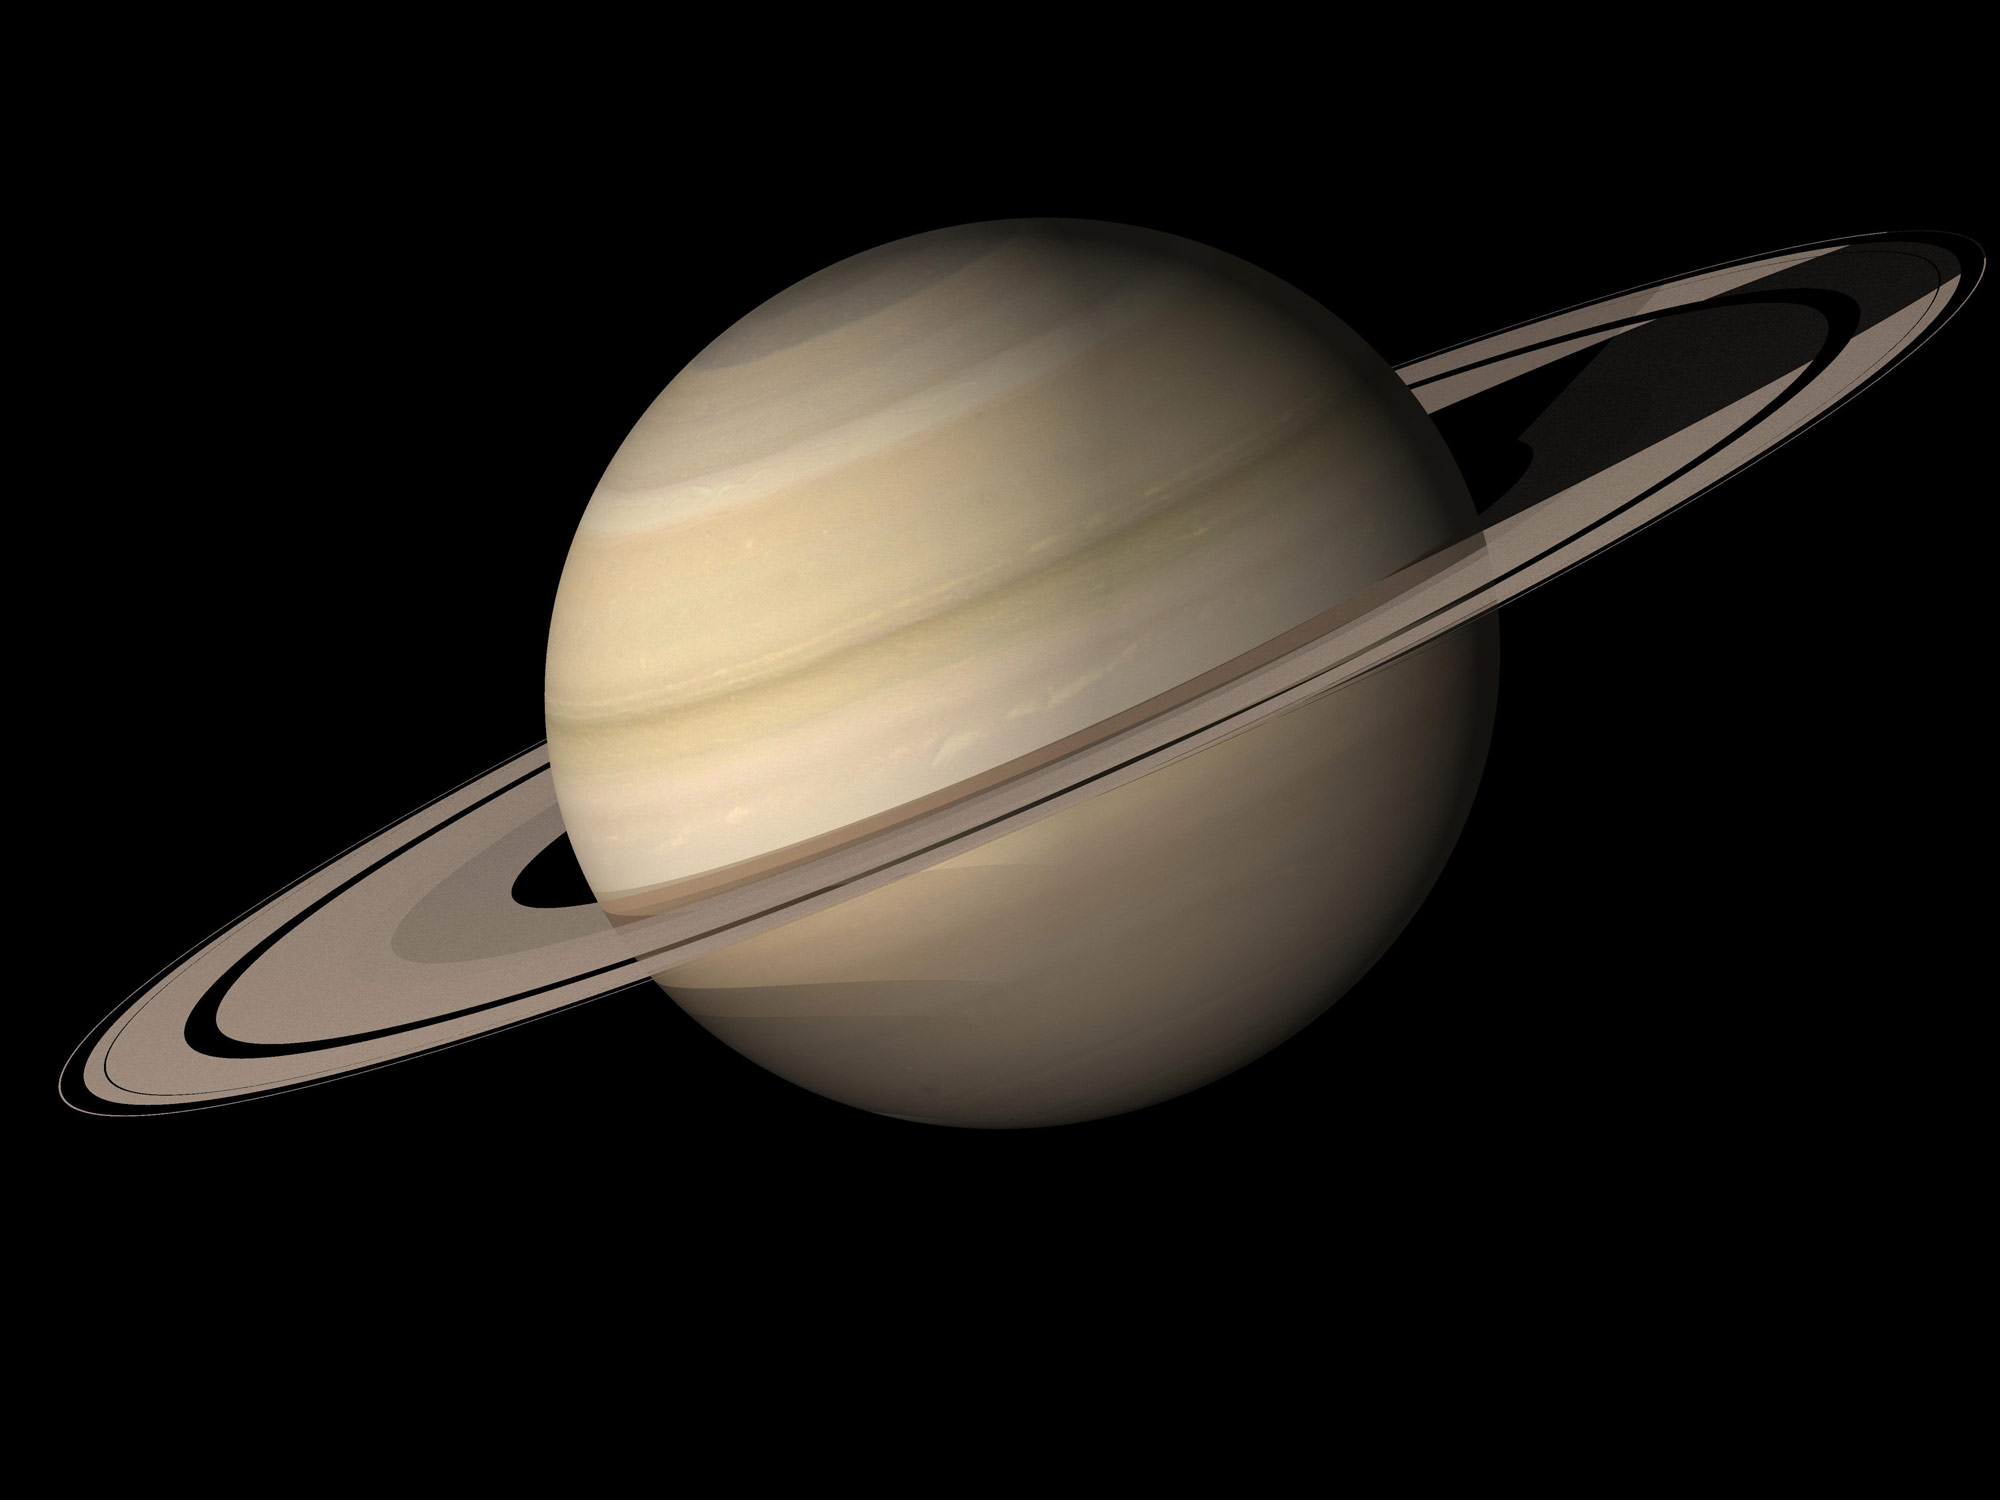 gallery of the planet saturn - photo #7